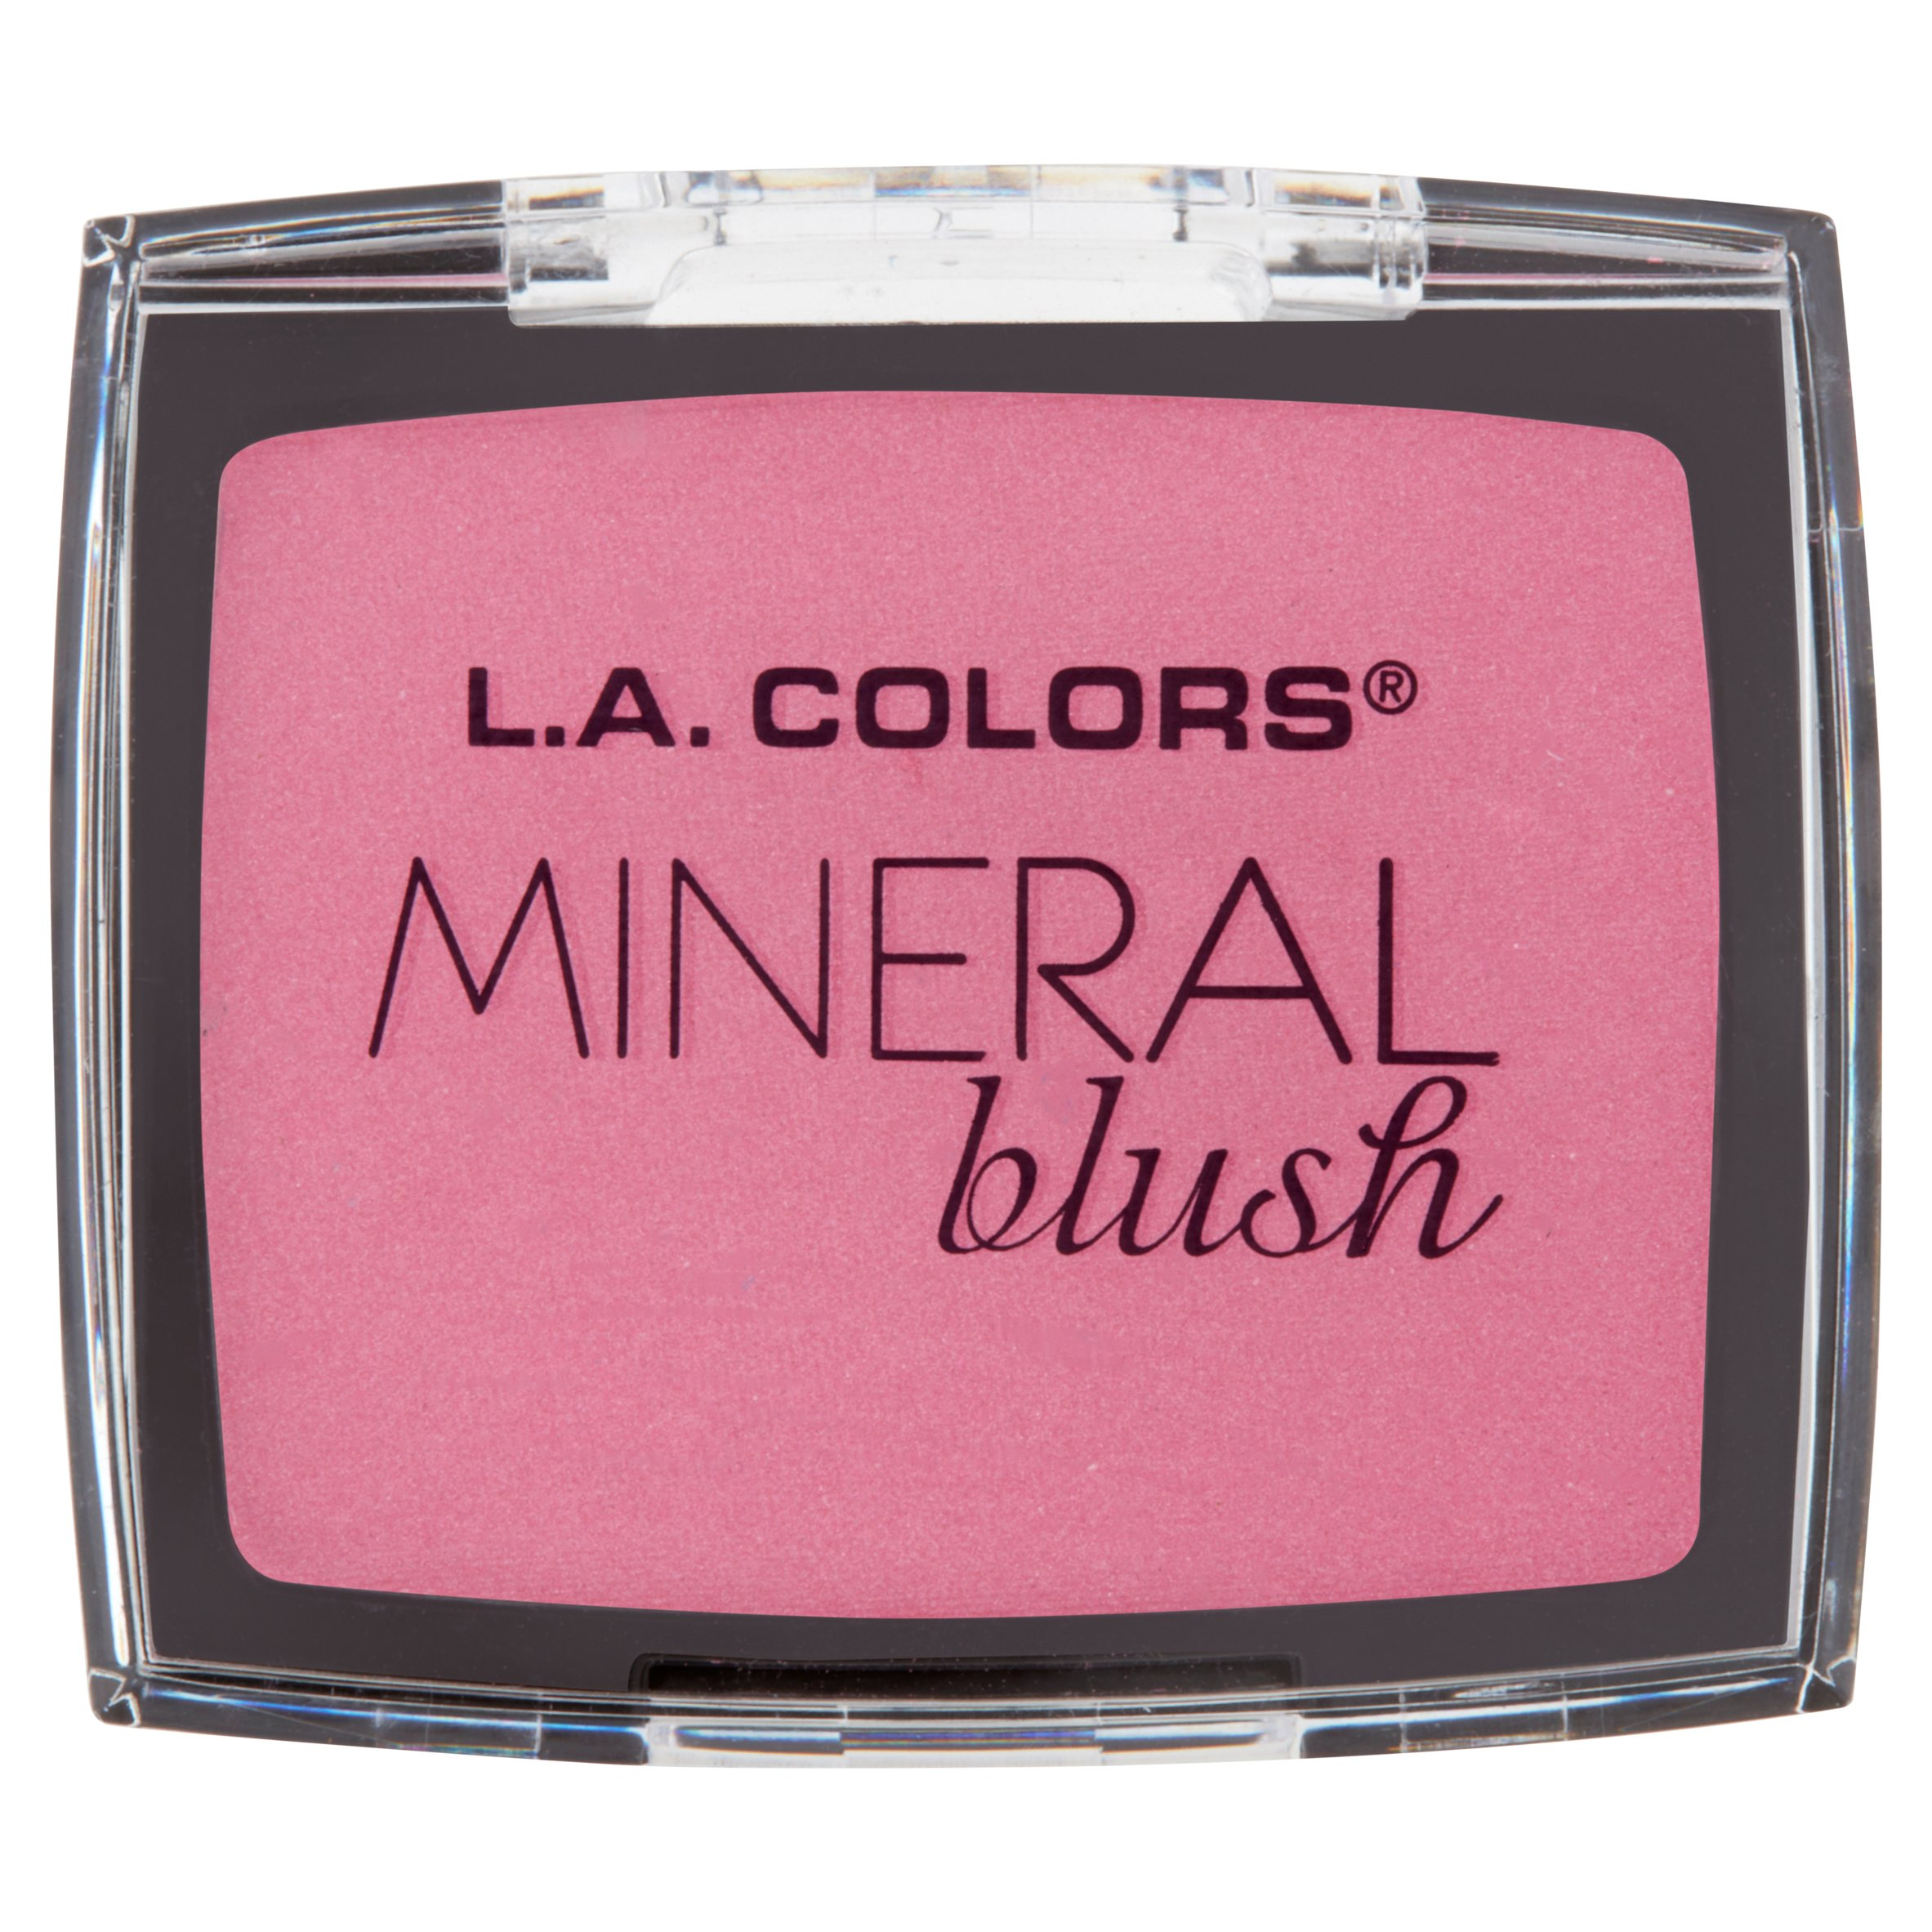 L.A. Colors Mineral Blush, Tickled Pink